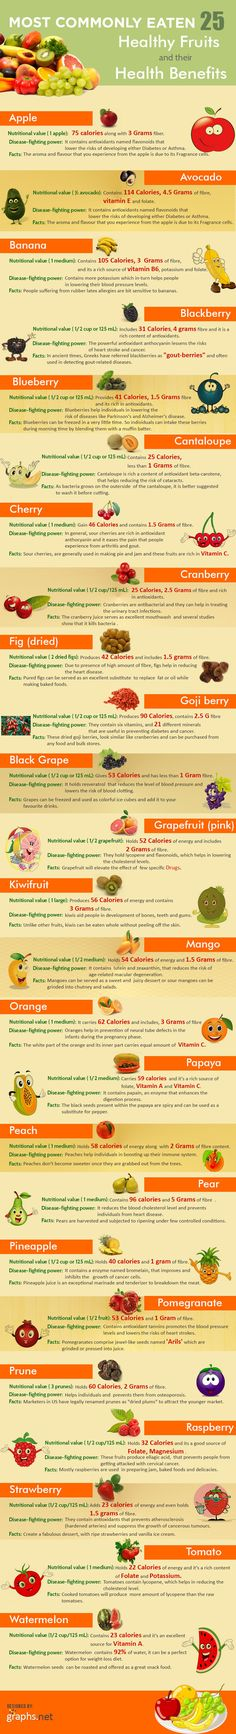 25 Healthy Fruits And Their Health Benefits Infographic - Bananas are very soothing to the gastrointestinal tract because of the high content of the soluble fiber pectin. The pectin helps to normalize bowel function and has shown some promise for the treatment of peptic ulcers. They also contain compounds called protease inhibitors which help eliminate harmful bacteria like Pylori